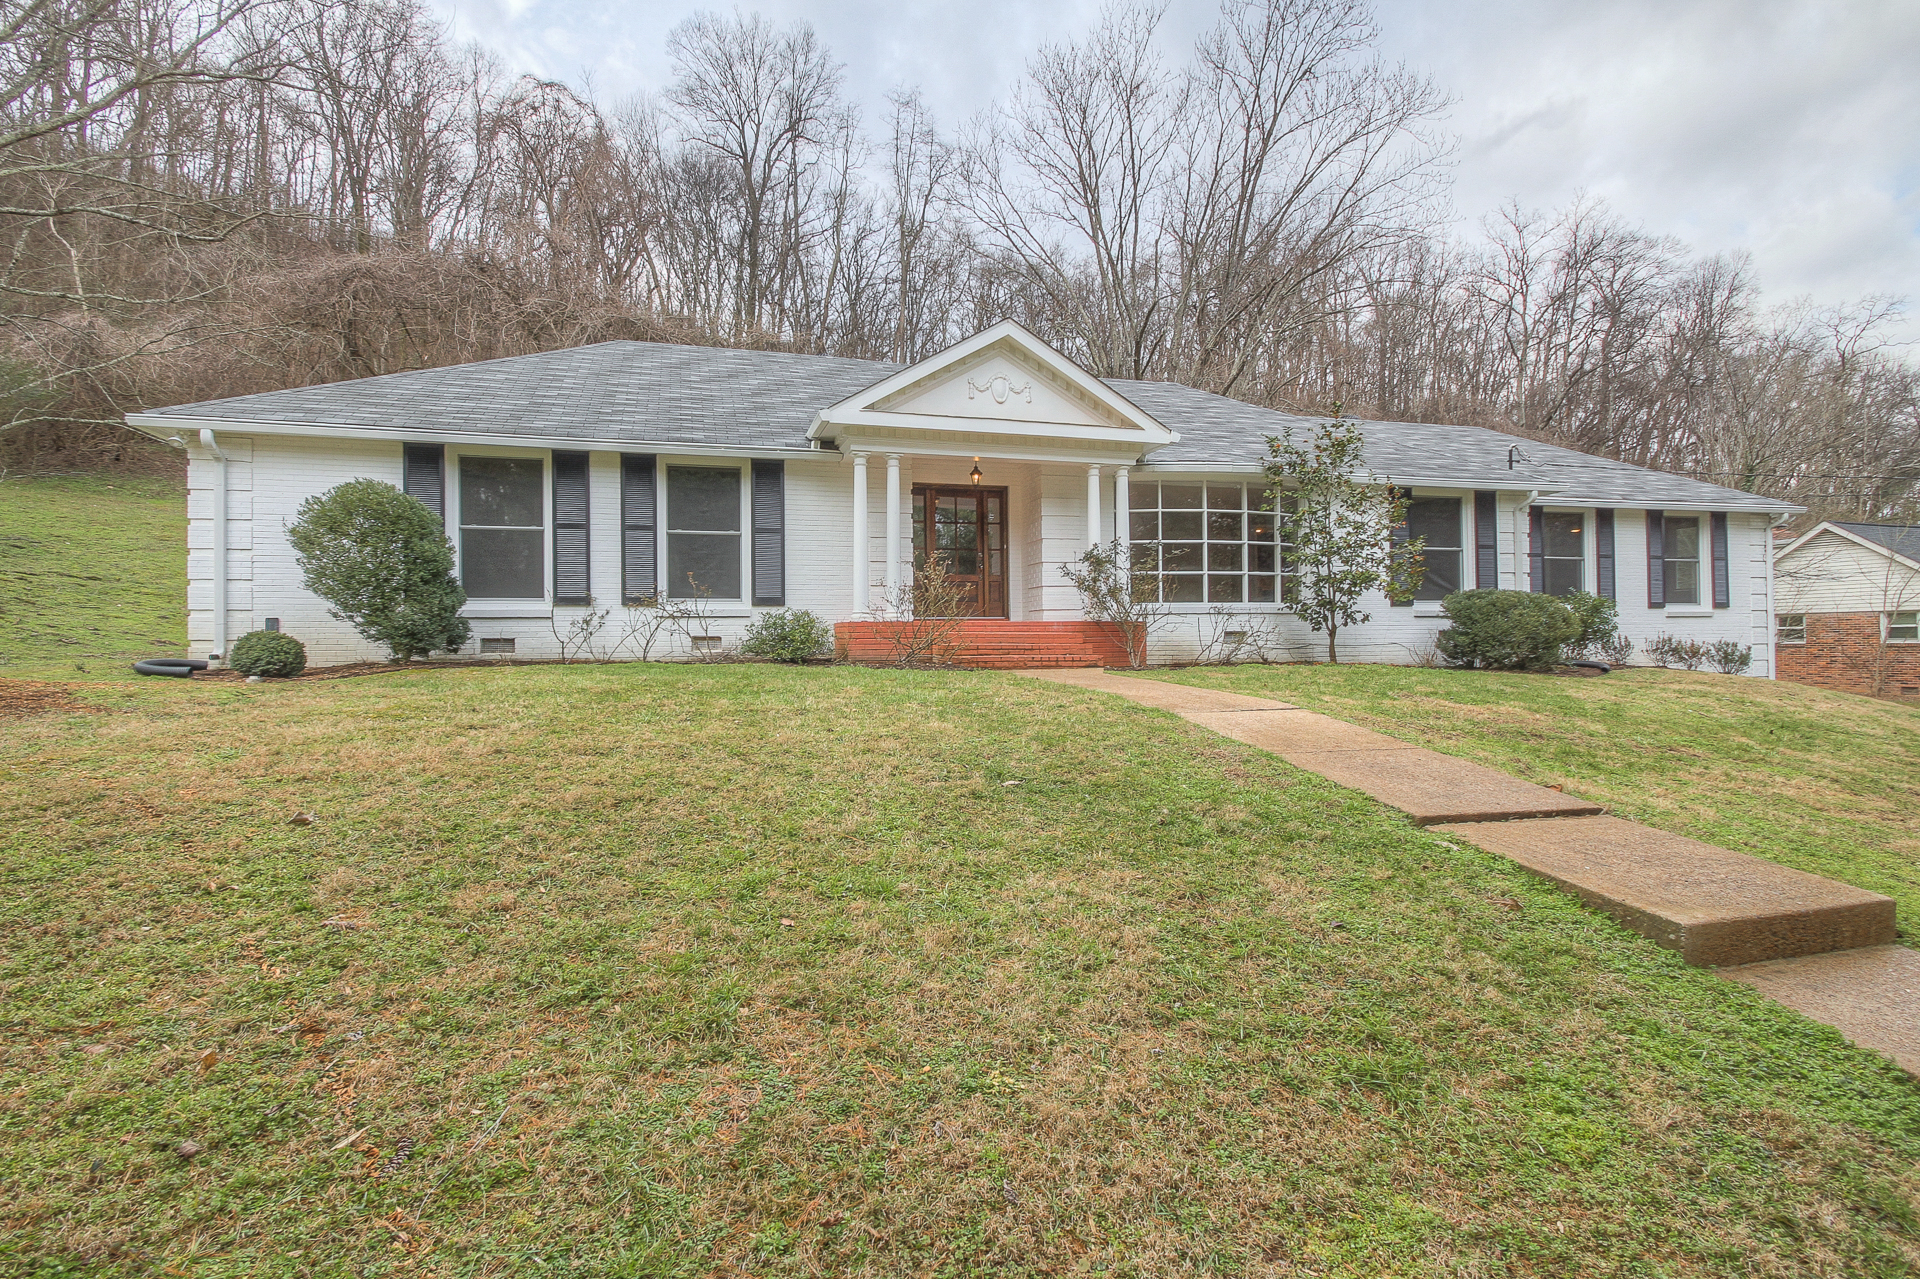 Moradia para Venda às Renovated and Spacious West Meade Home 6690 Clearbrook Dr West Meade, Nashville, Tennessee, 37205 Estados Unidos